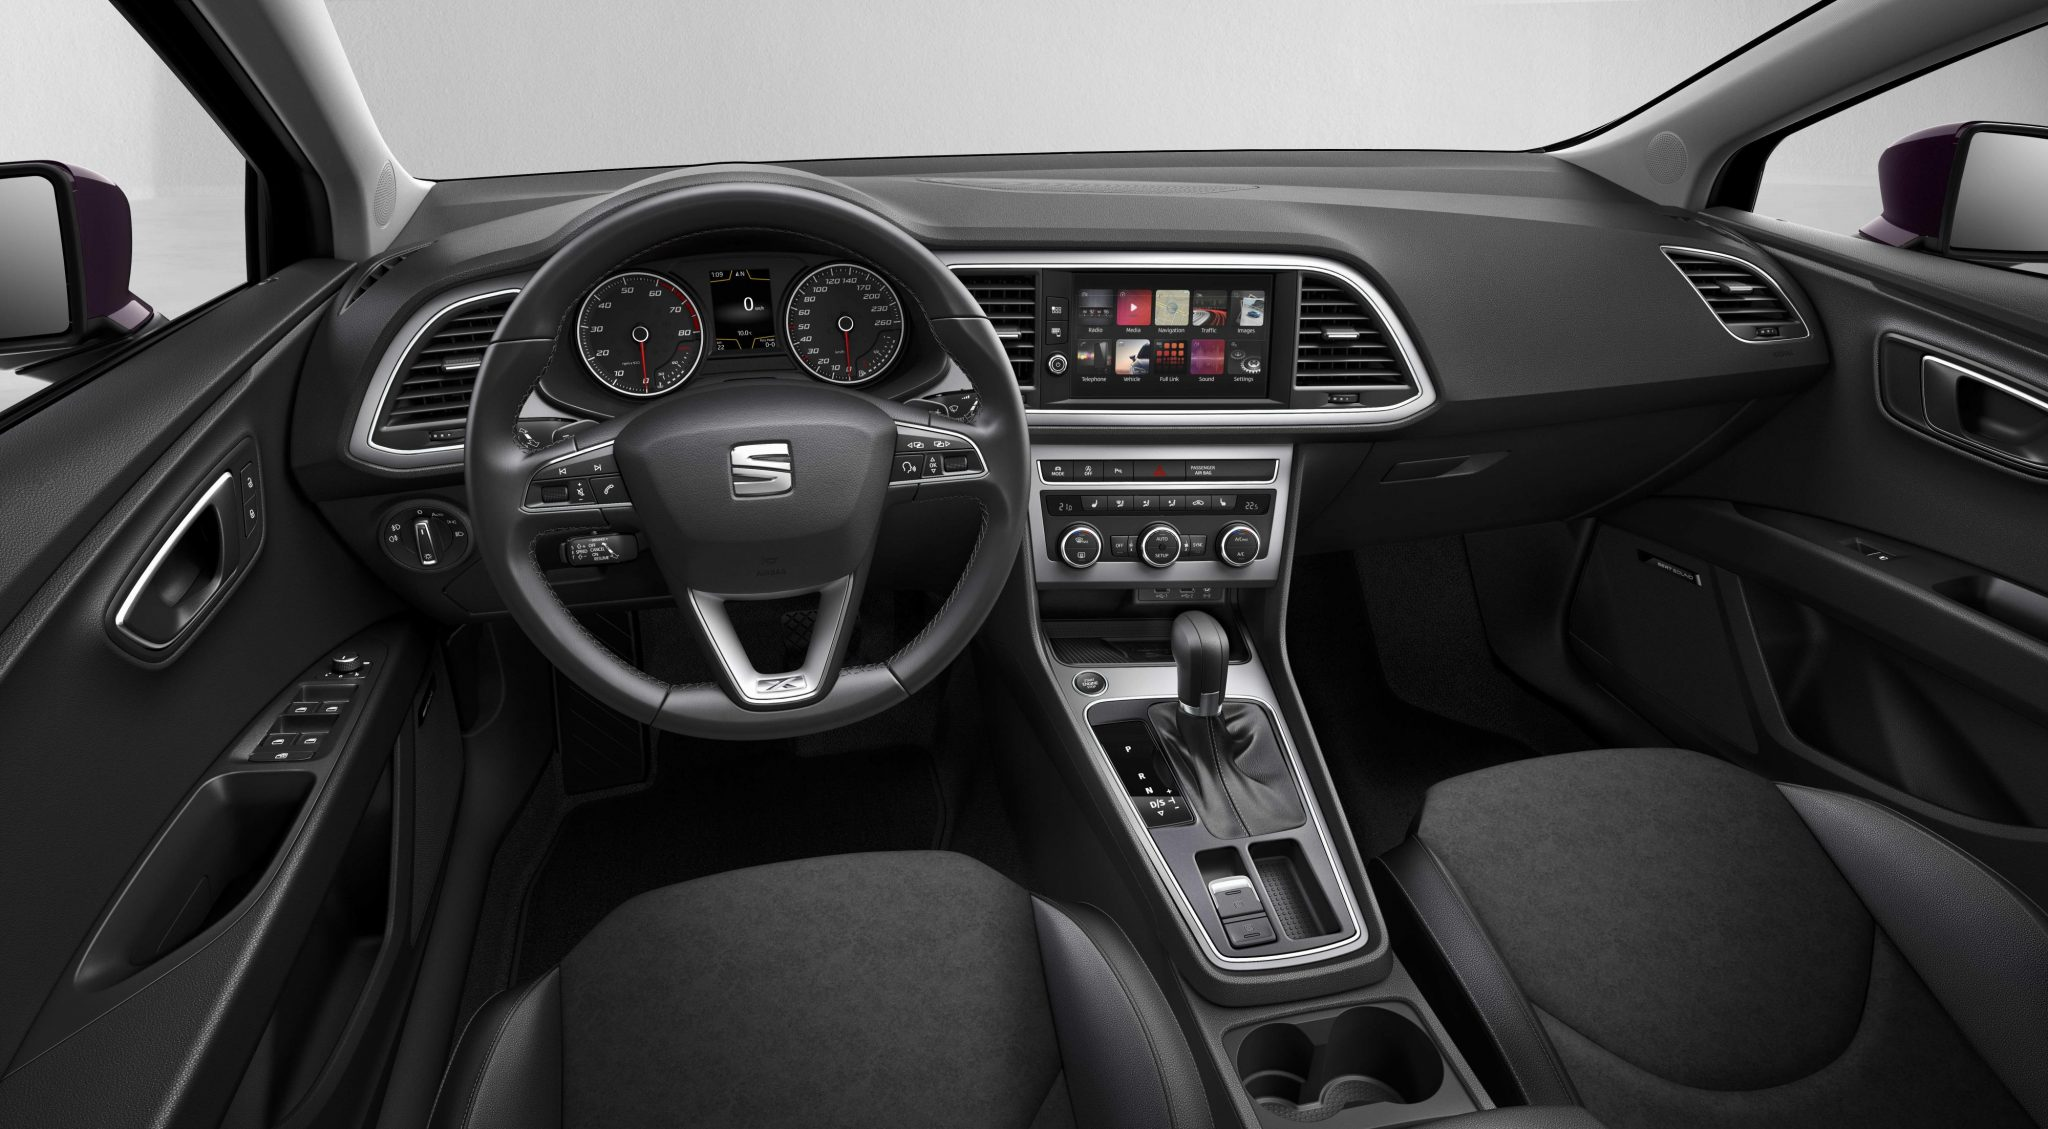 Seat unveils updated 2017 seat leon for Seat leon interior